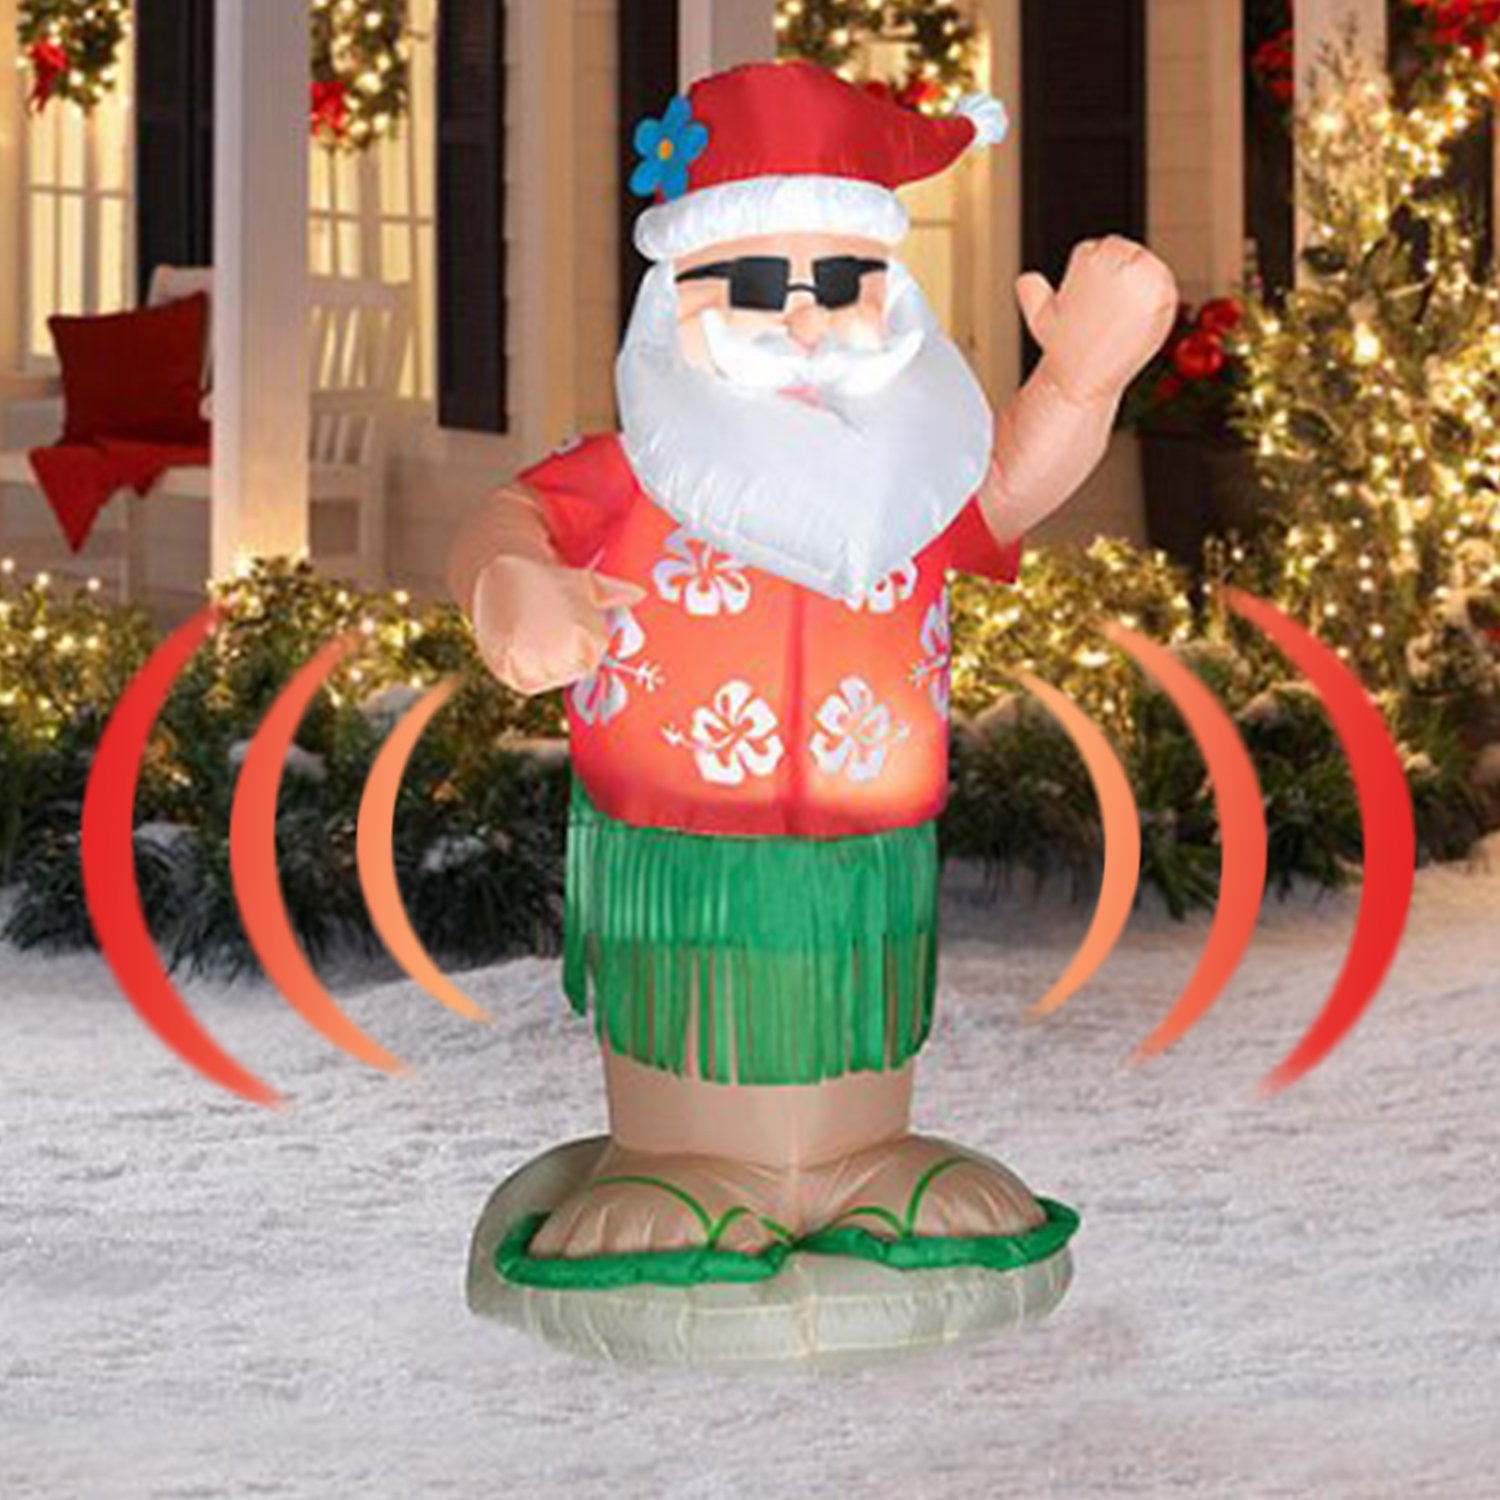 Animated Hula Dance Santa - Actually Shakes His Bottom - Christmas Inflatables 6ft by Home Accents Holiday